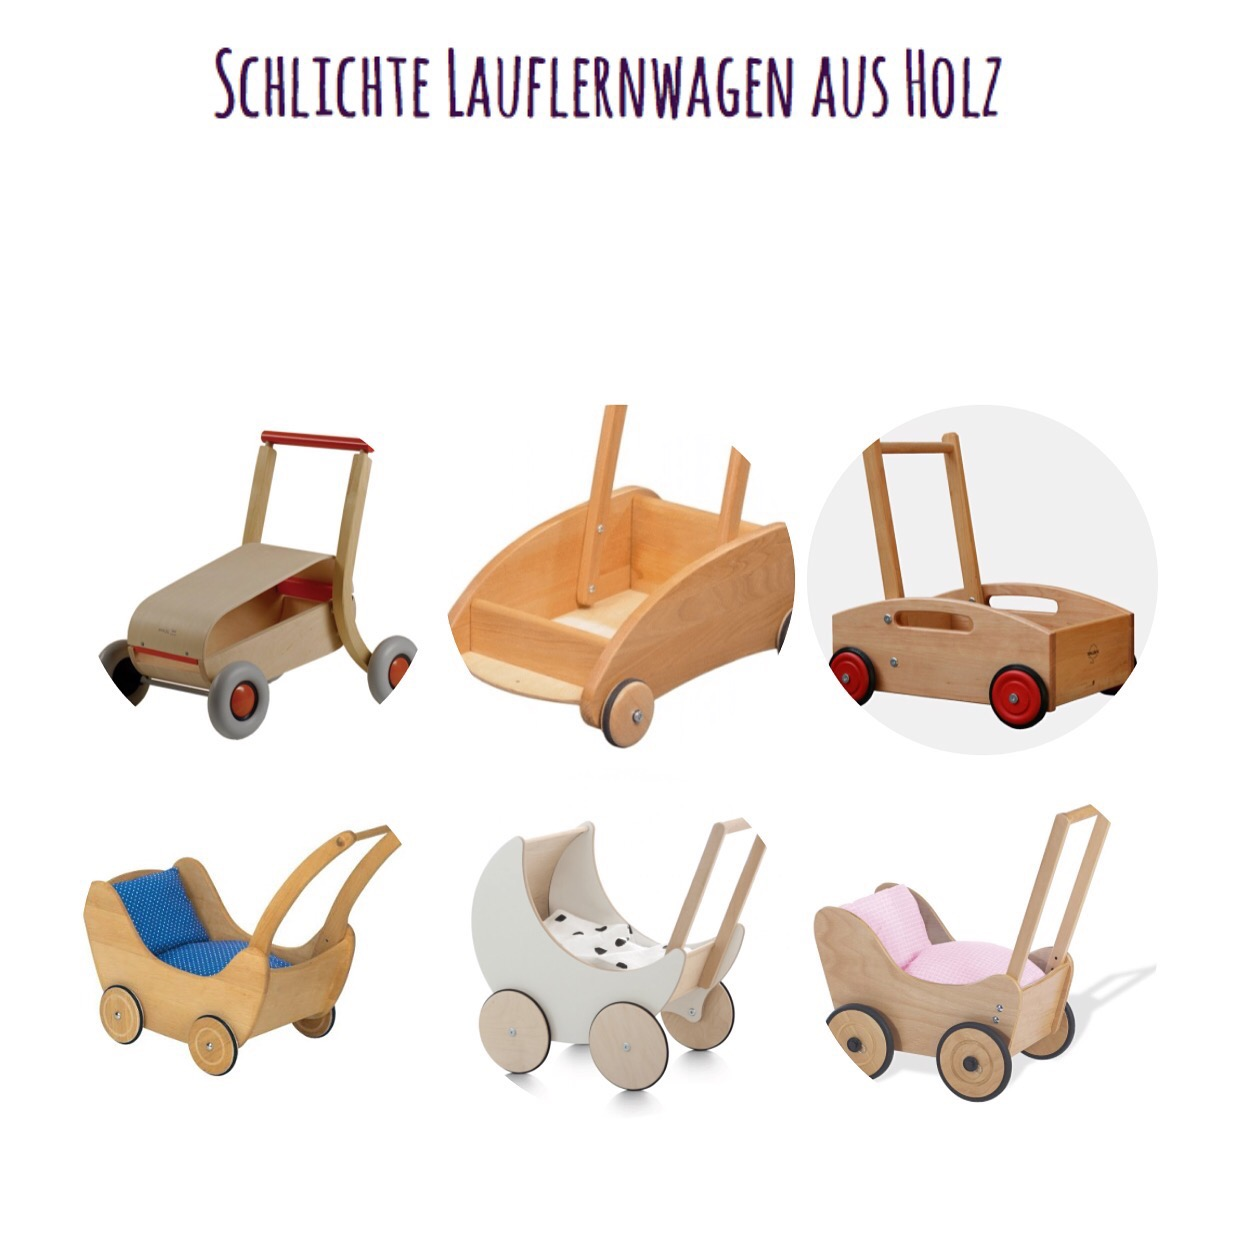 schlichte lauflernwagen aus holz mamablog shop by. Black Bedroom Furniture Sets. Home Design Ideas